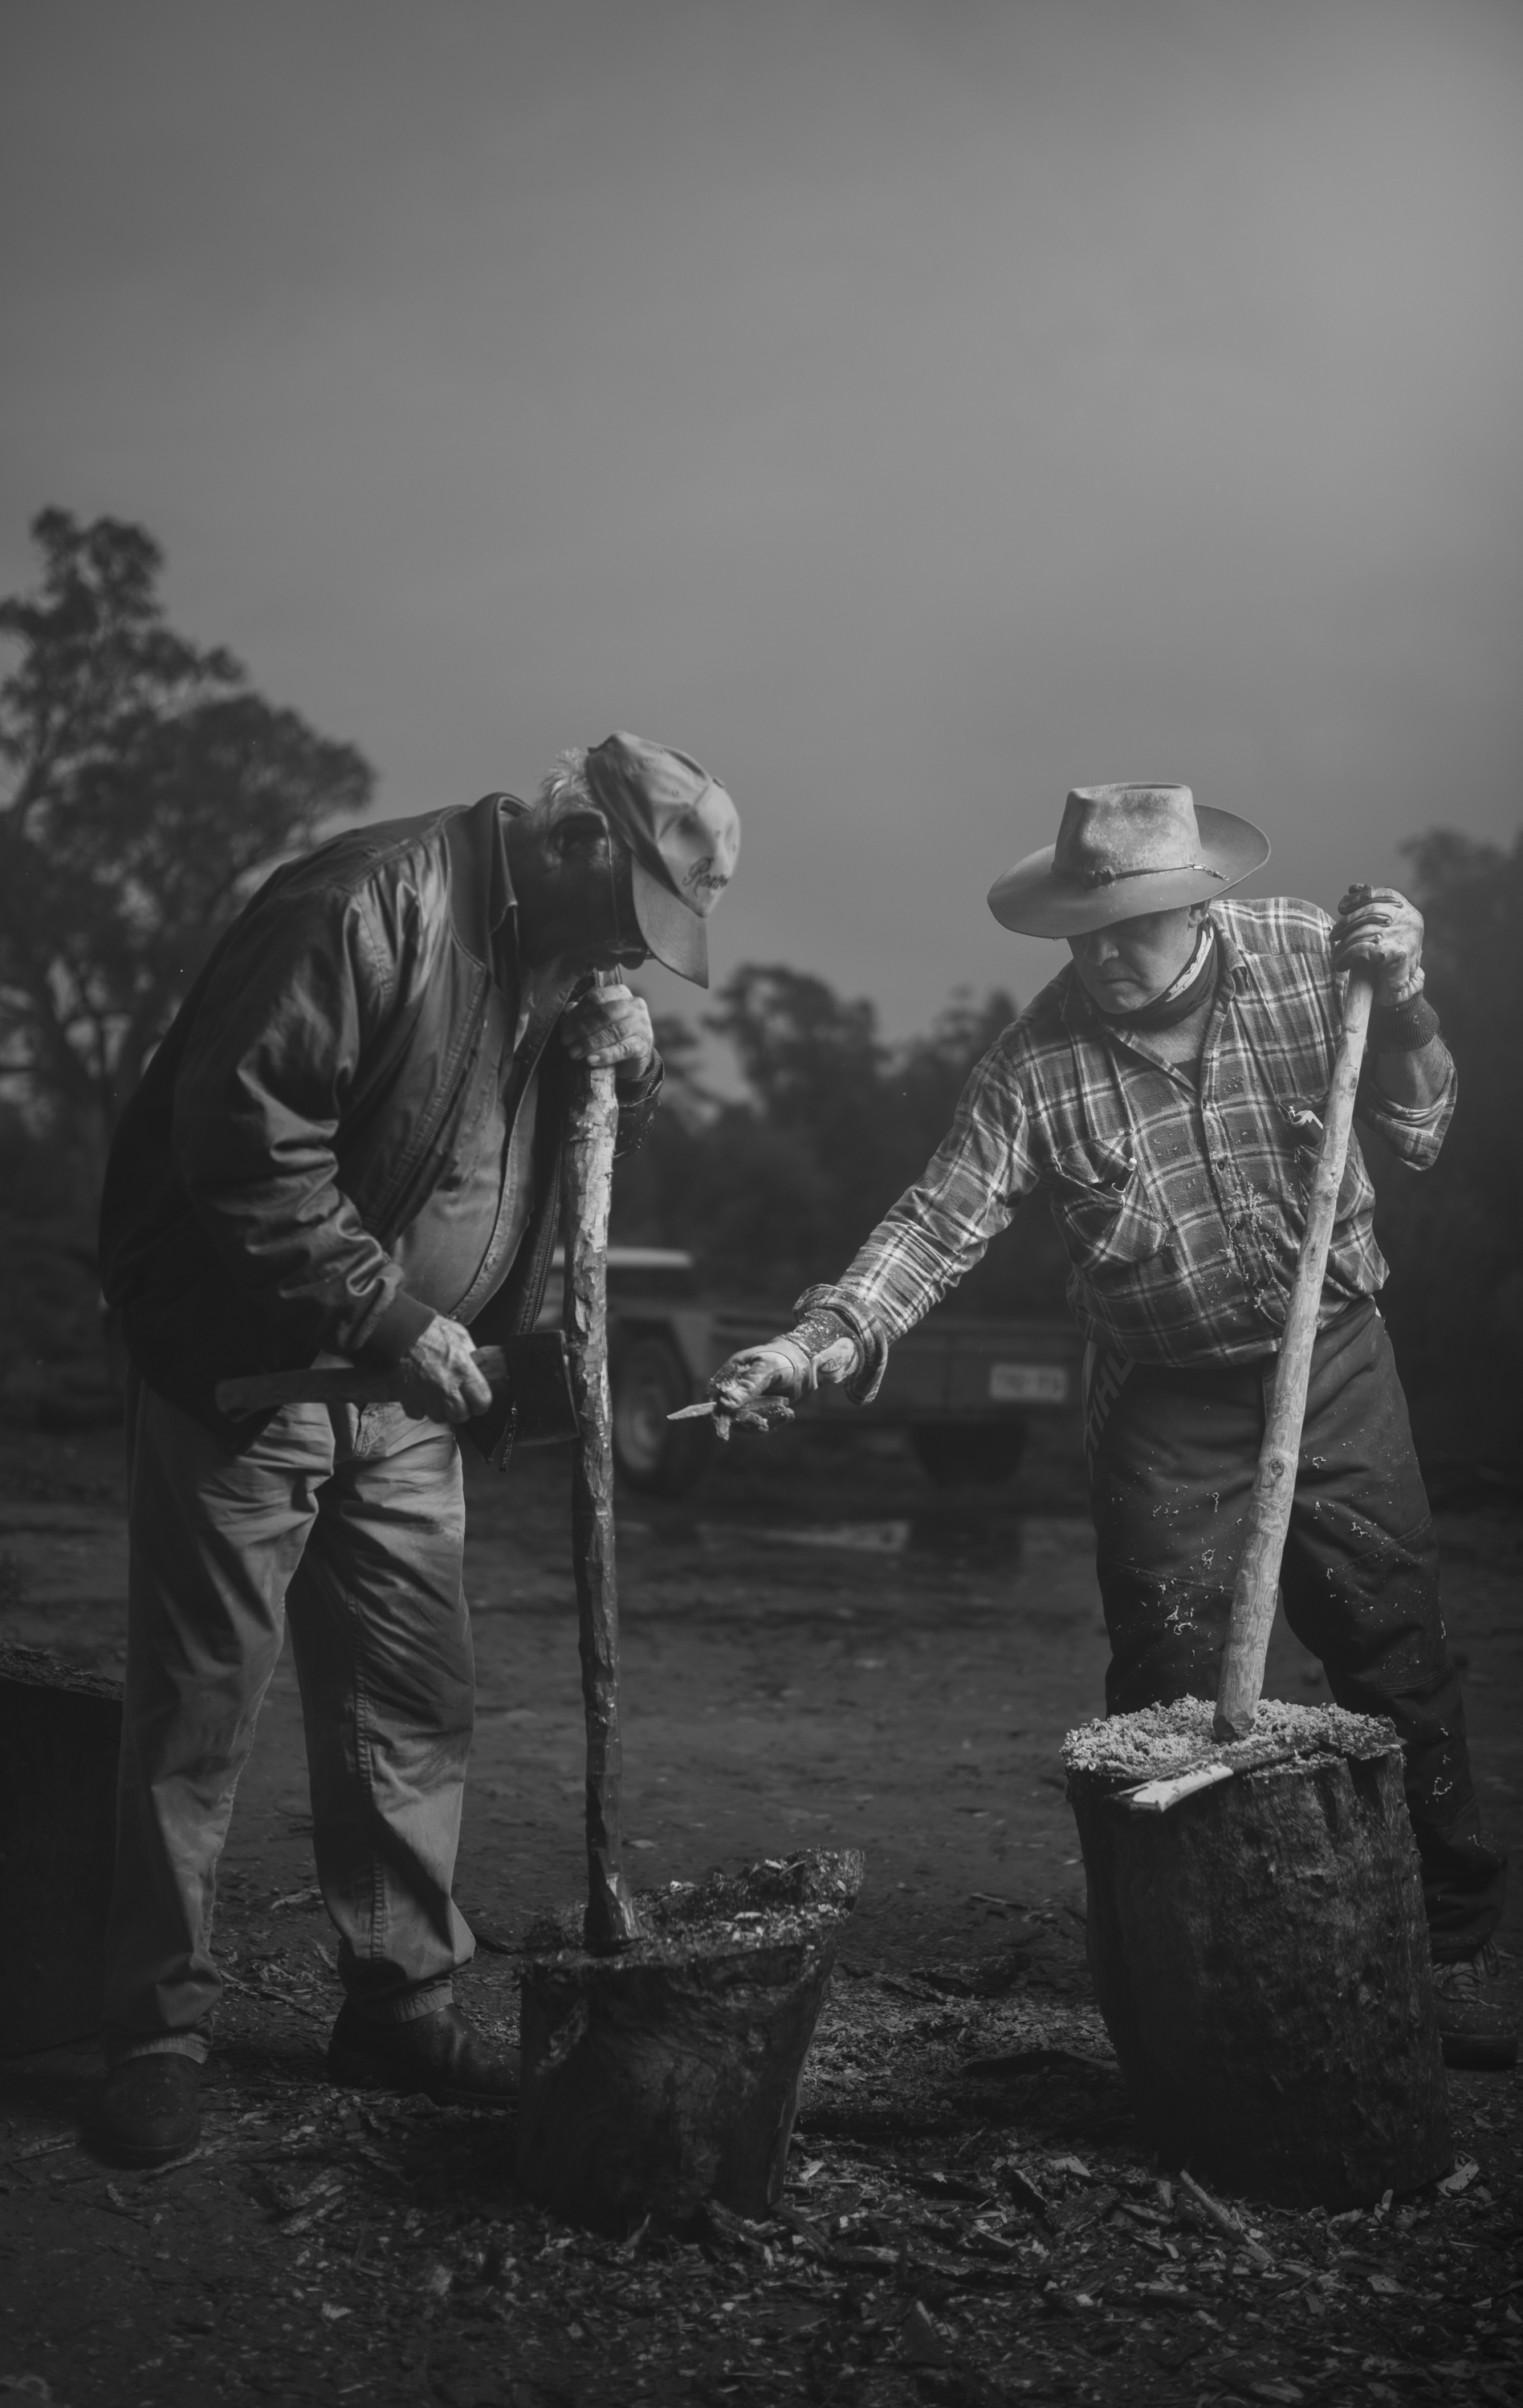 DGL_6754 Uncle Roy Coulthard and Lawrie Thomas at Mambray Creek.jpg